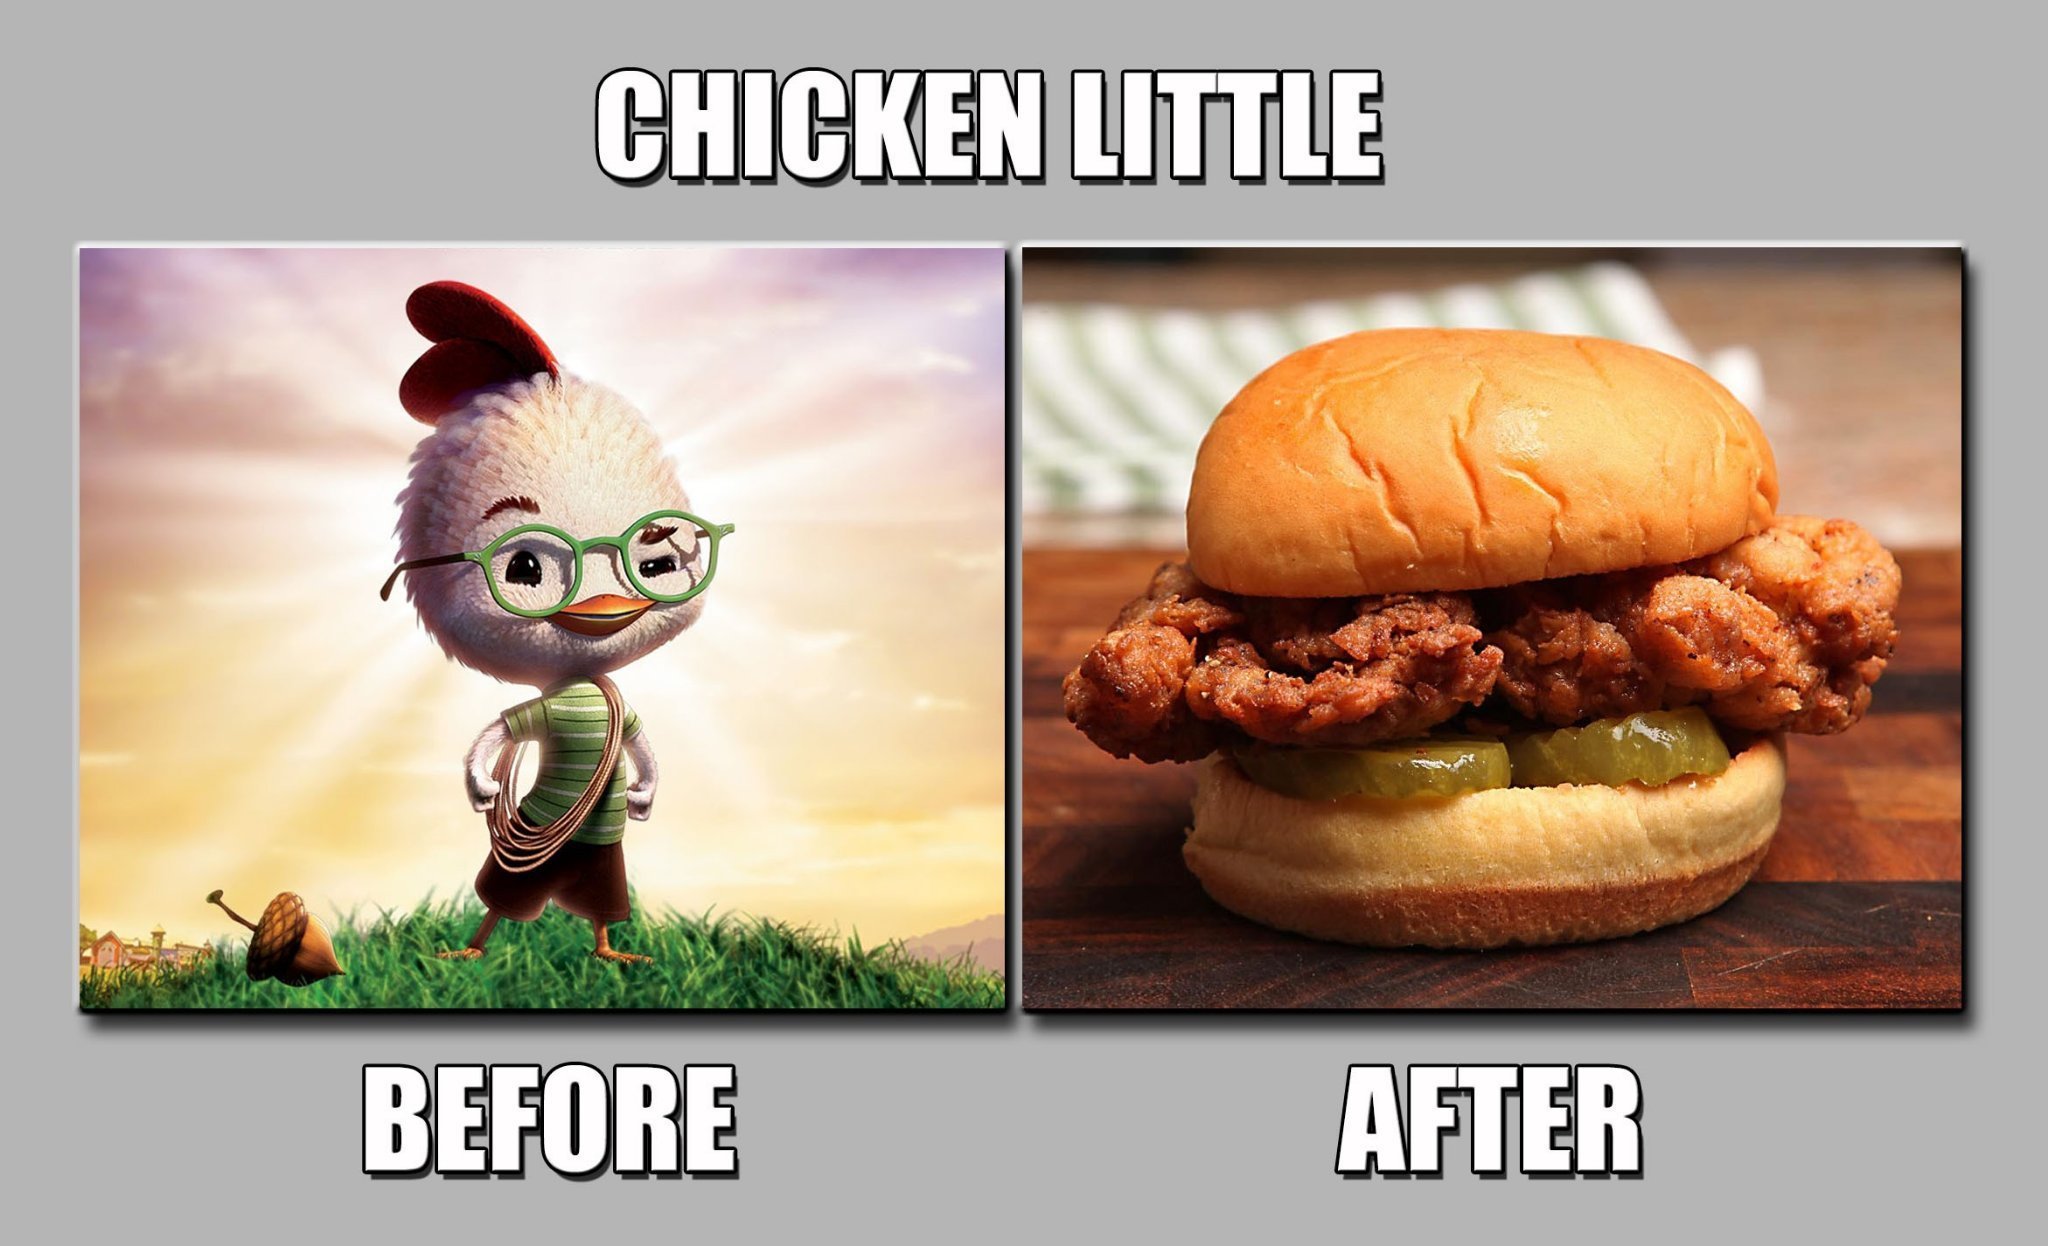 Chicken Little - meme